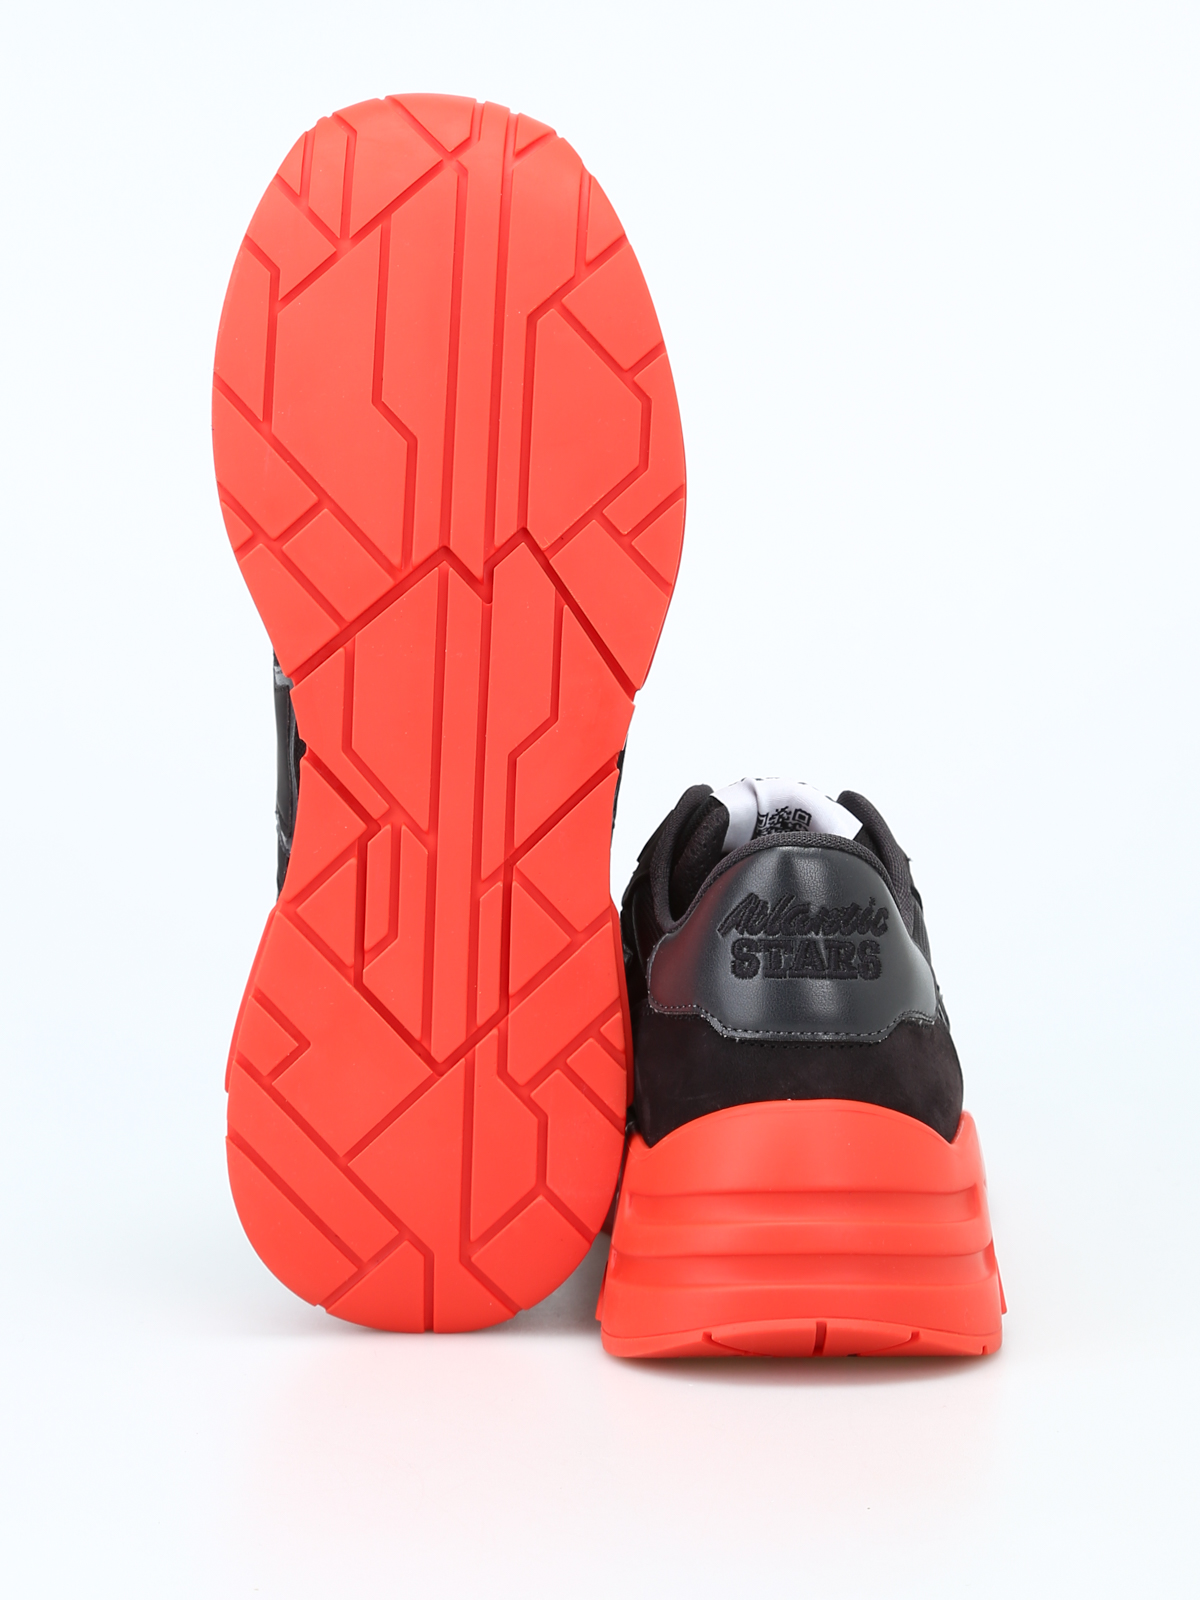 the best attitude 09586 6c4f0 Atlantic Stars - Mars black sneakers with red rubber sole ...